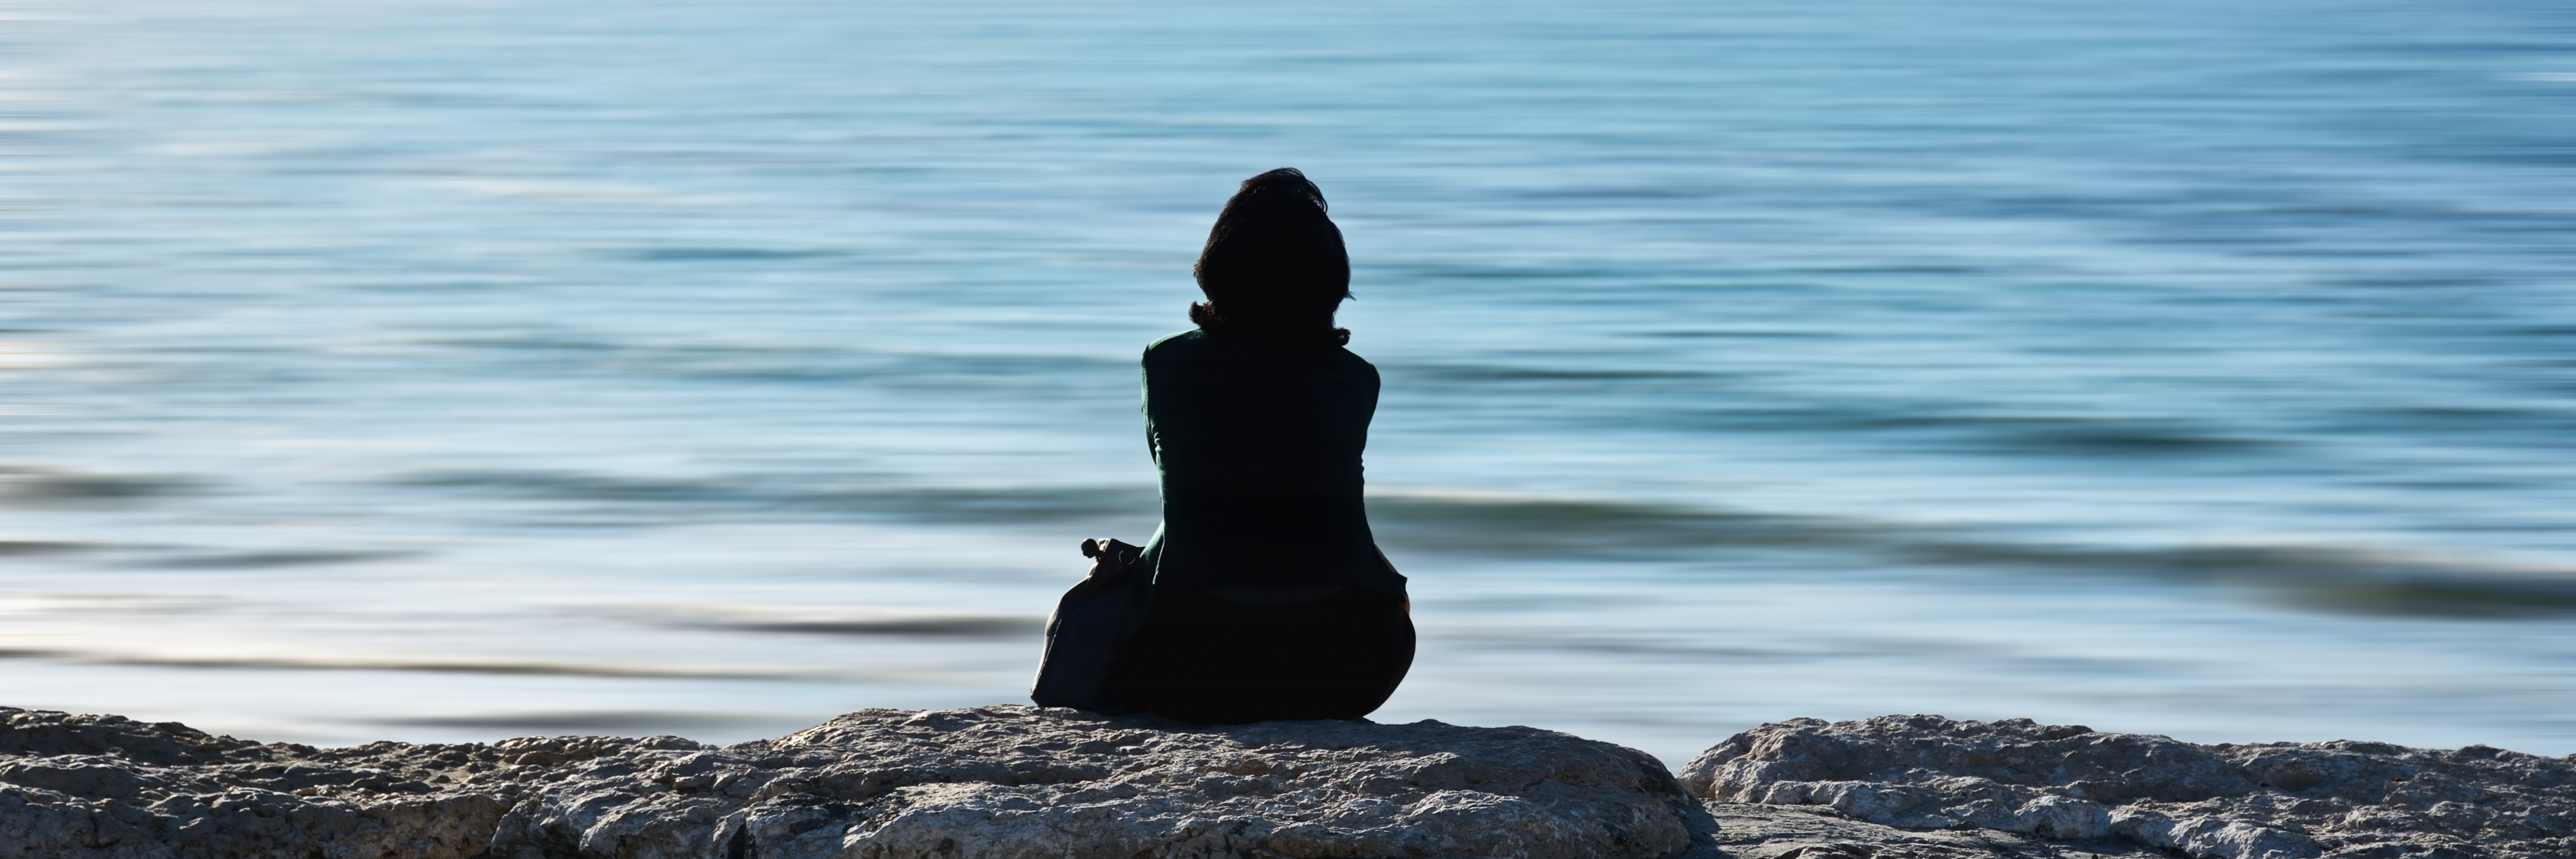 woman sitting alone in front of ocean with seagull in distance